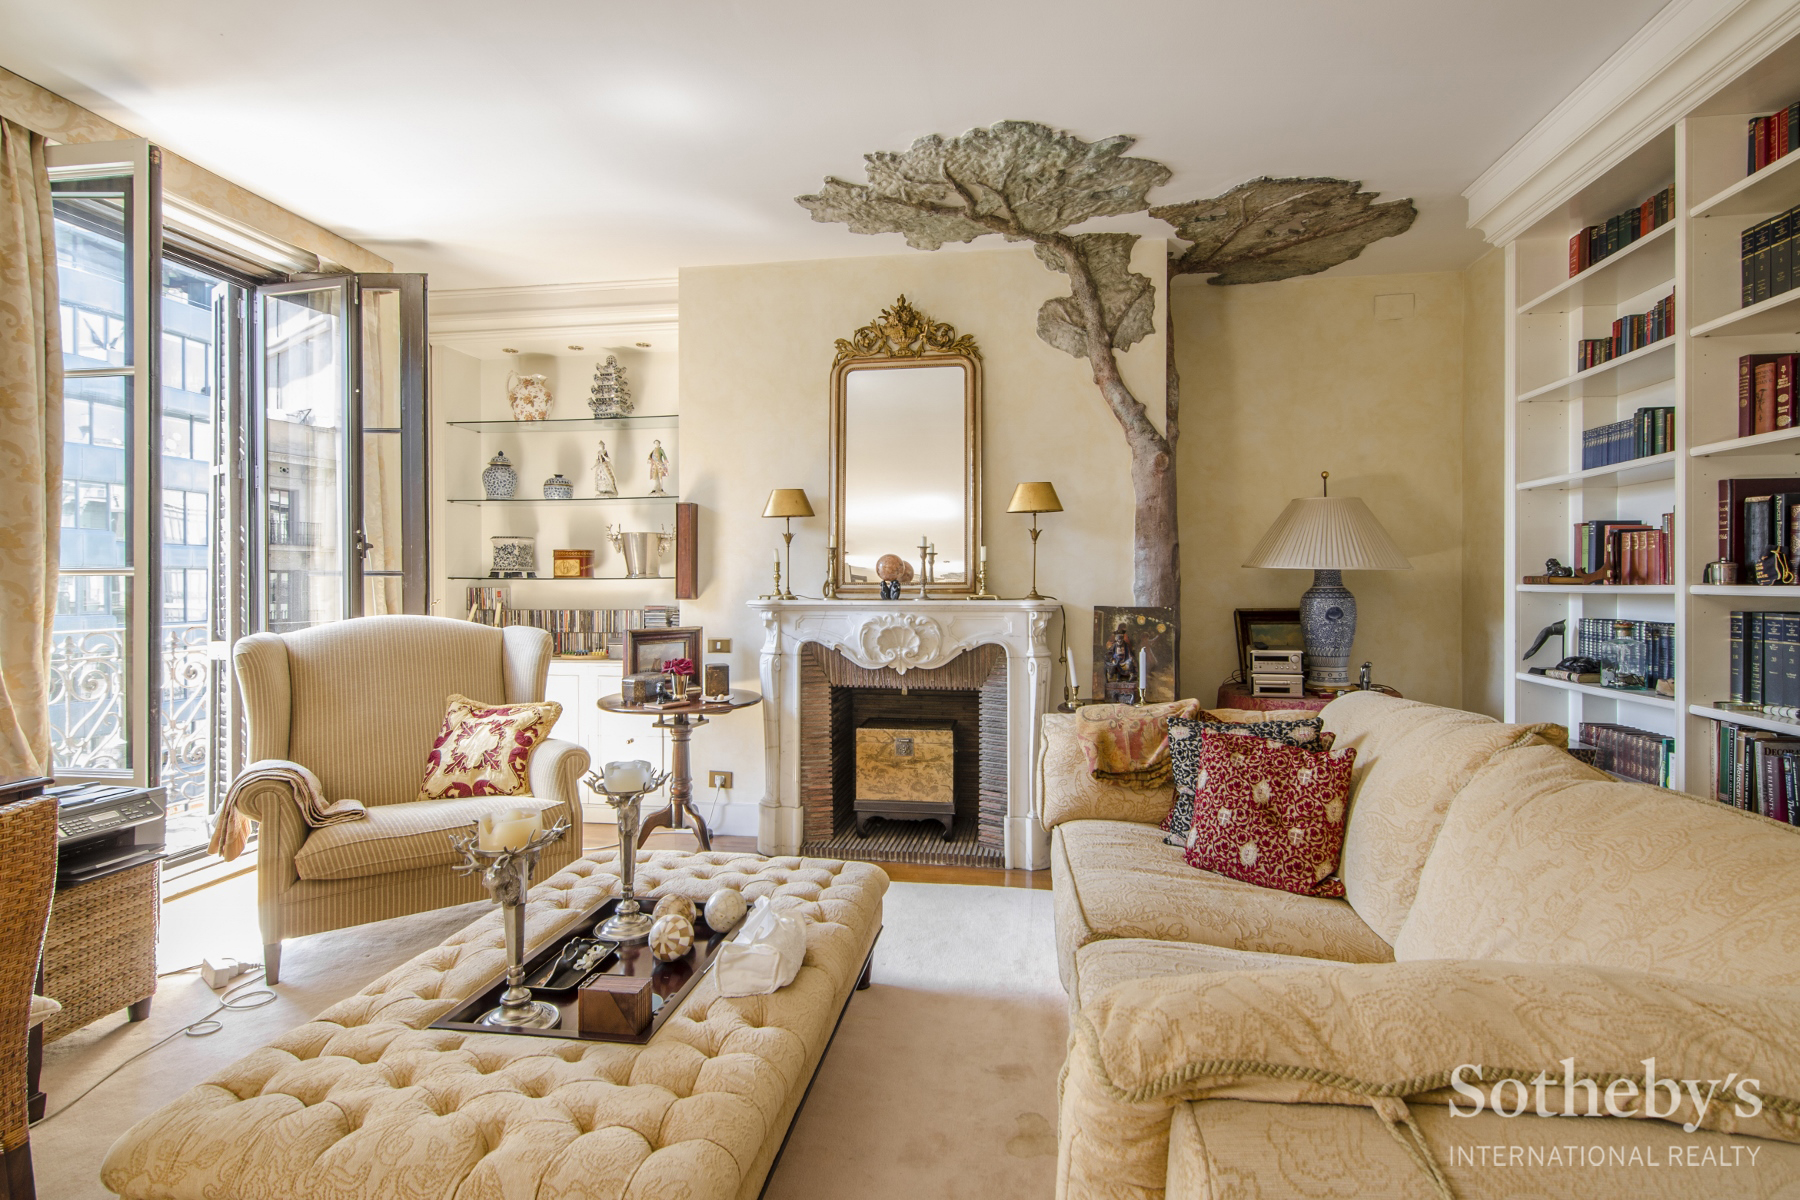 Apartment for Sale at Elegant and Spacious Flat in a Regal Building in Right Eixample Eixample, Barcelona City, Barcelona 08007 Spain